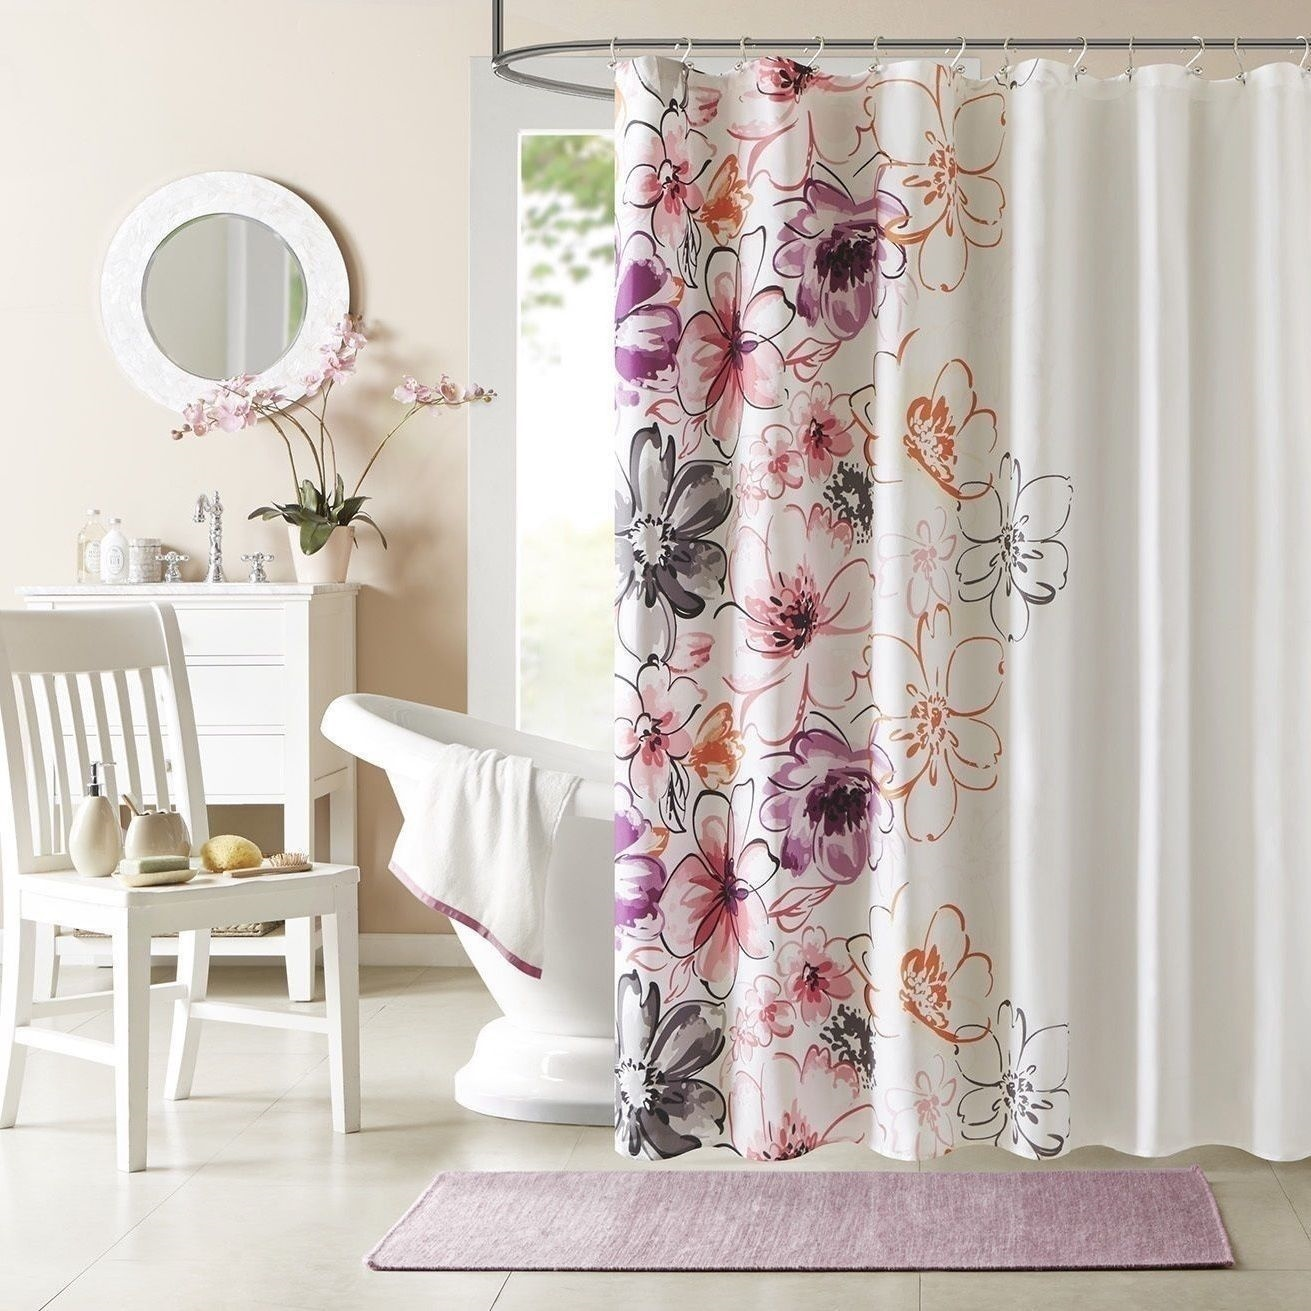 NEW Pink Orange Plum Floral Shower Curtain Fabric Modern Bathroom Bath 72 In